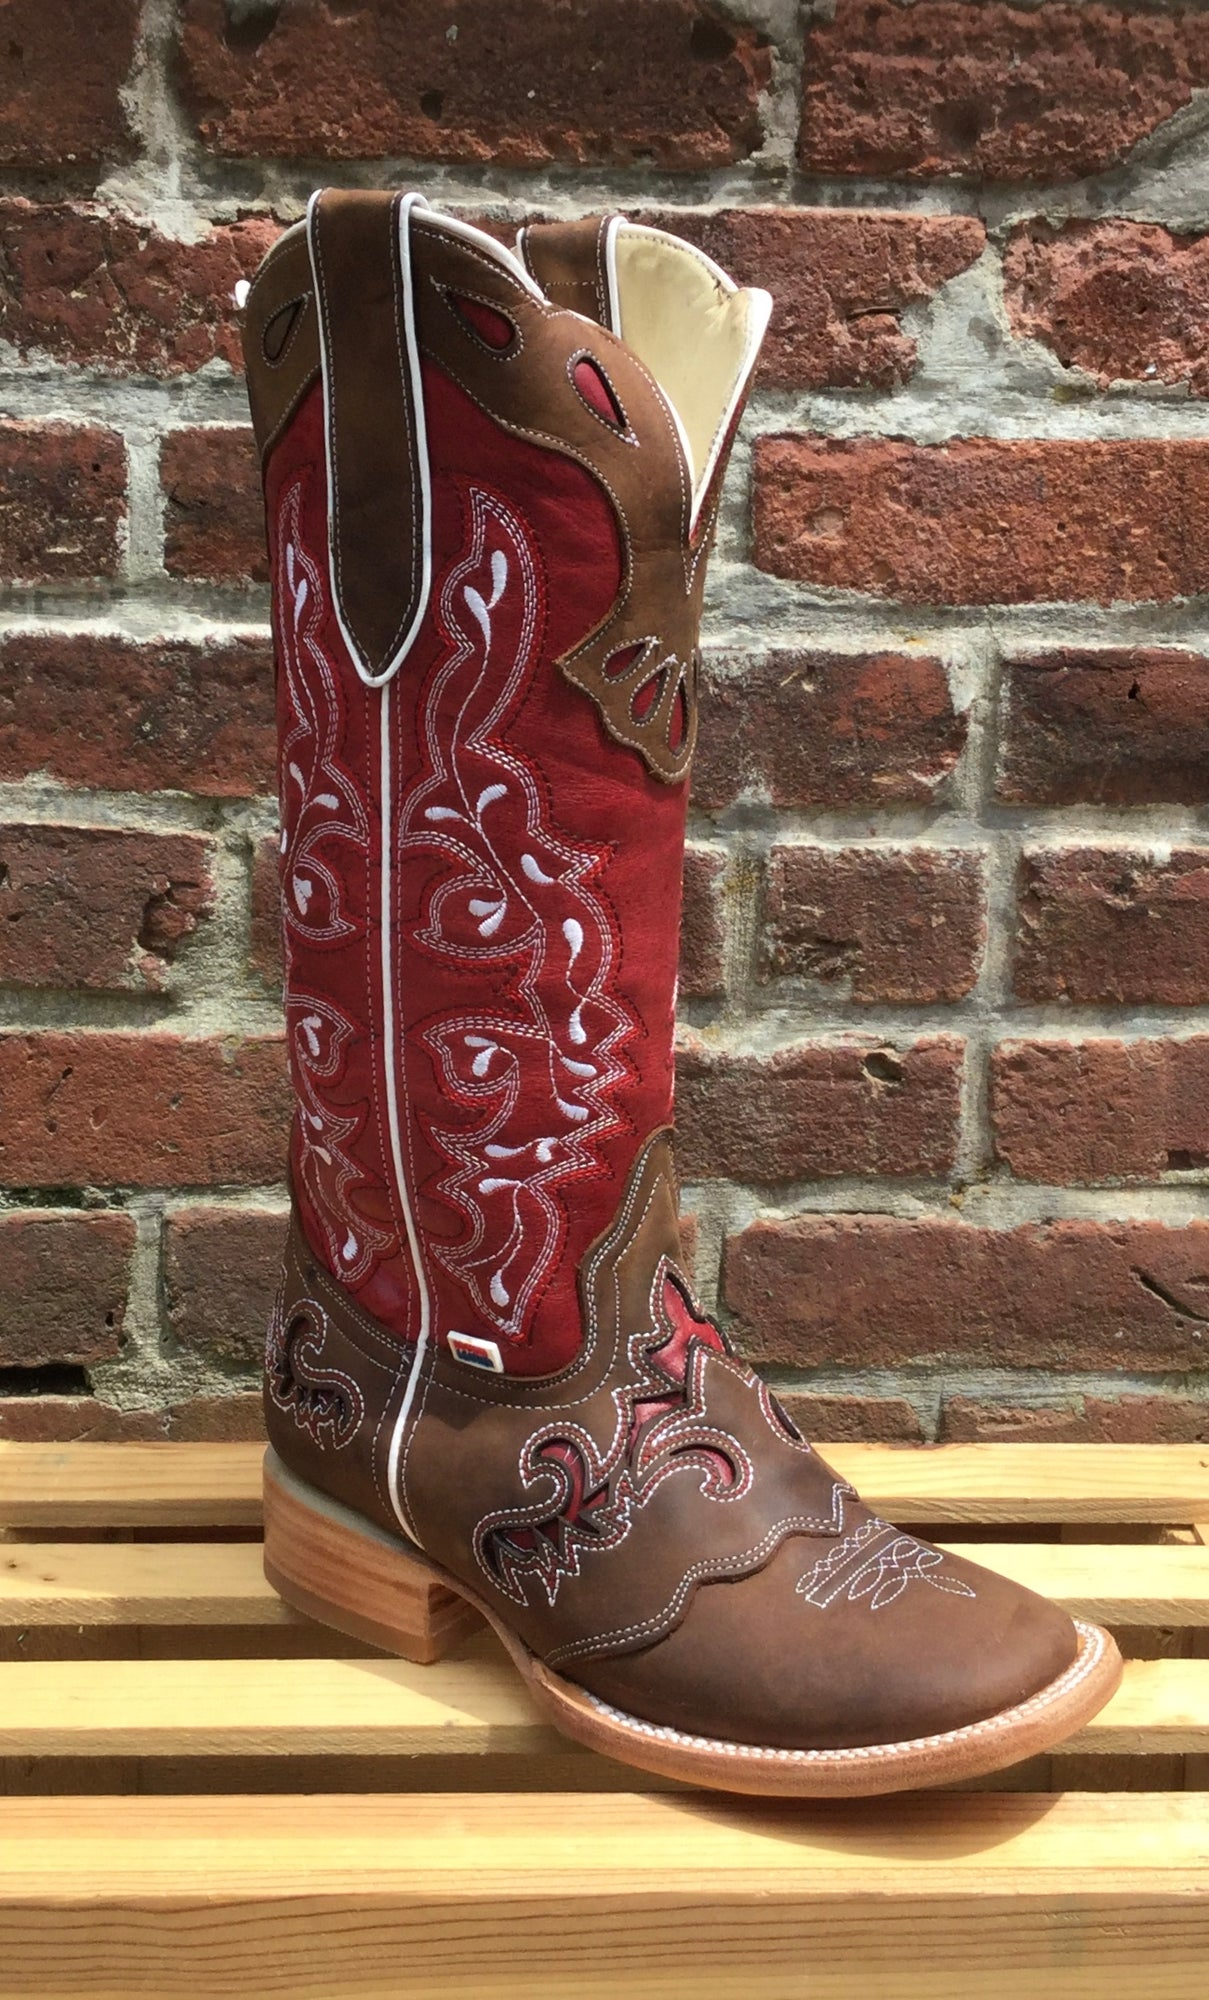 Women's Rockin Leather Tall Distressed Brown Boot with Wide Square Toe in Red